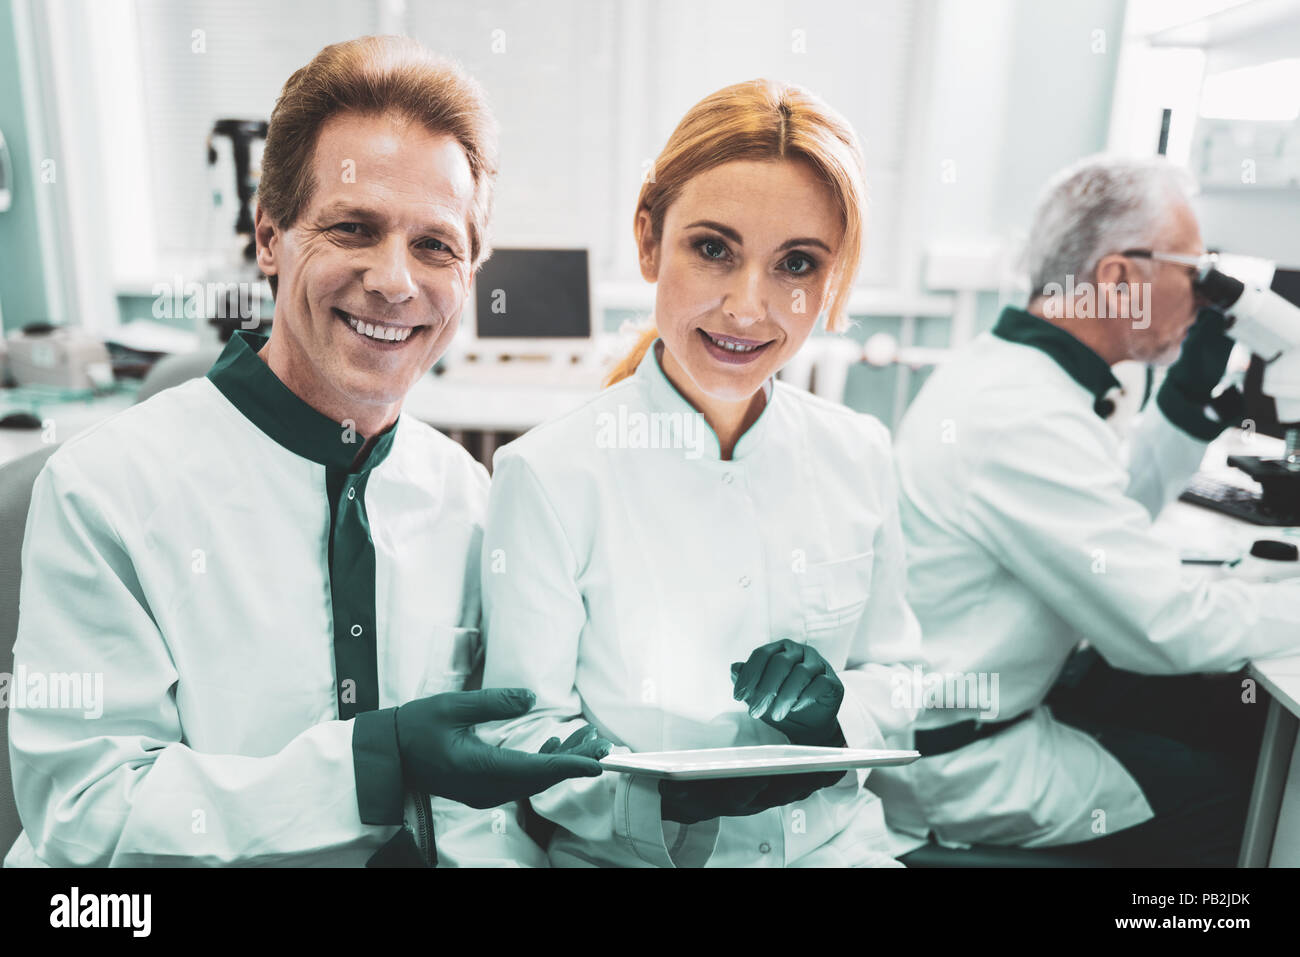 Married chemists enjoying working together in laboratory - Stock Image